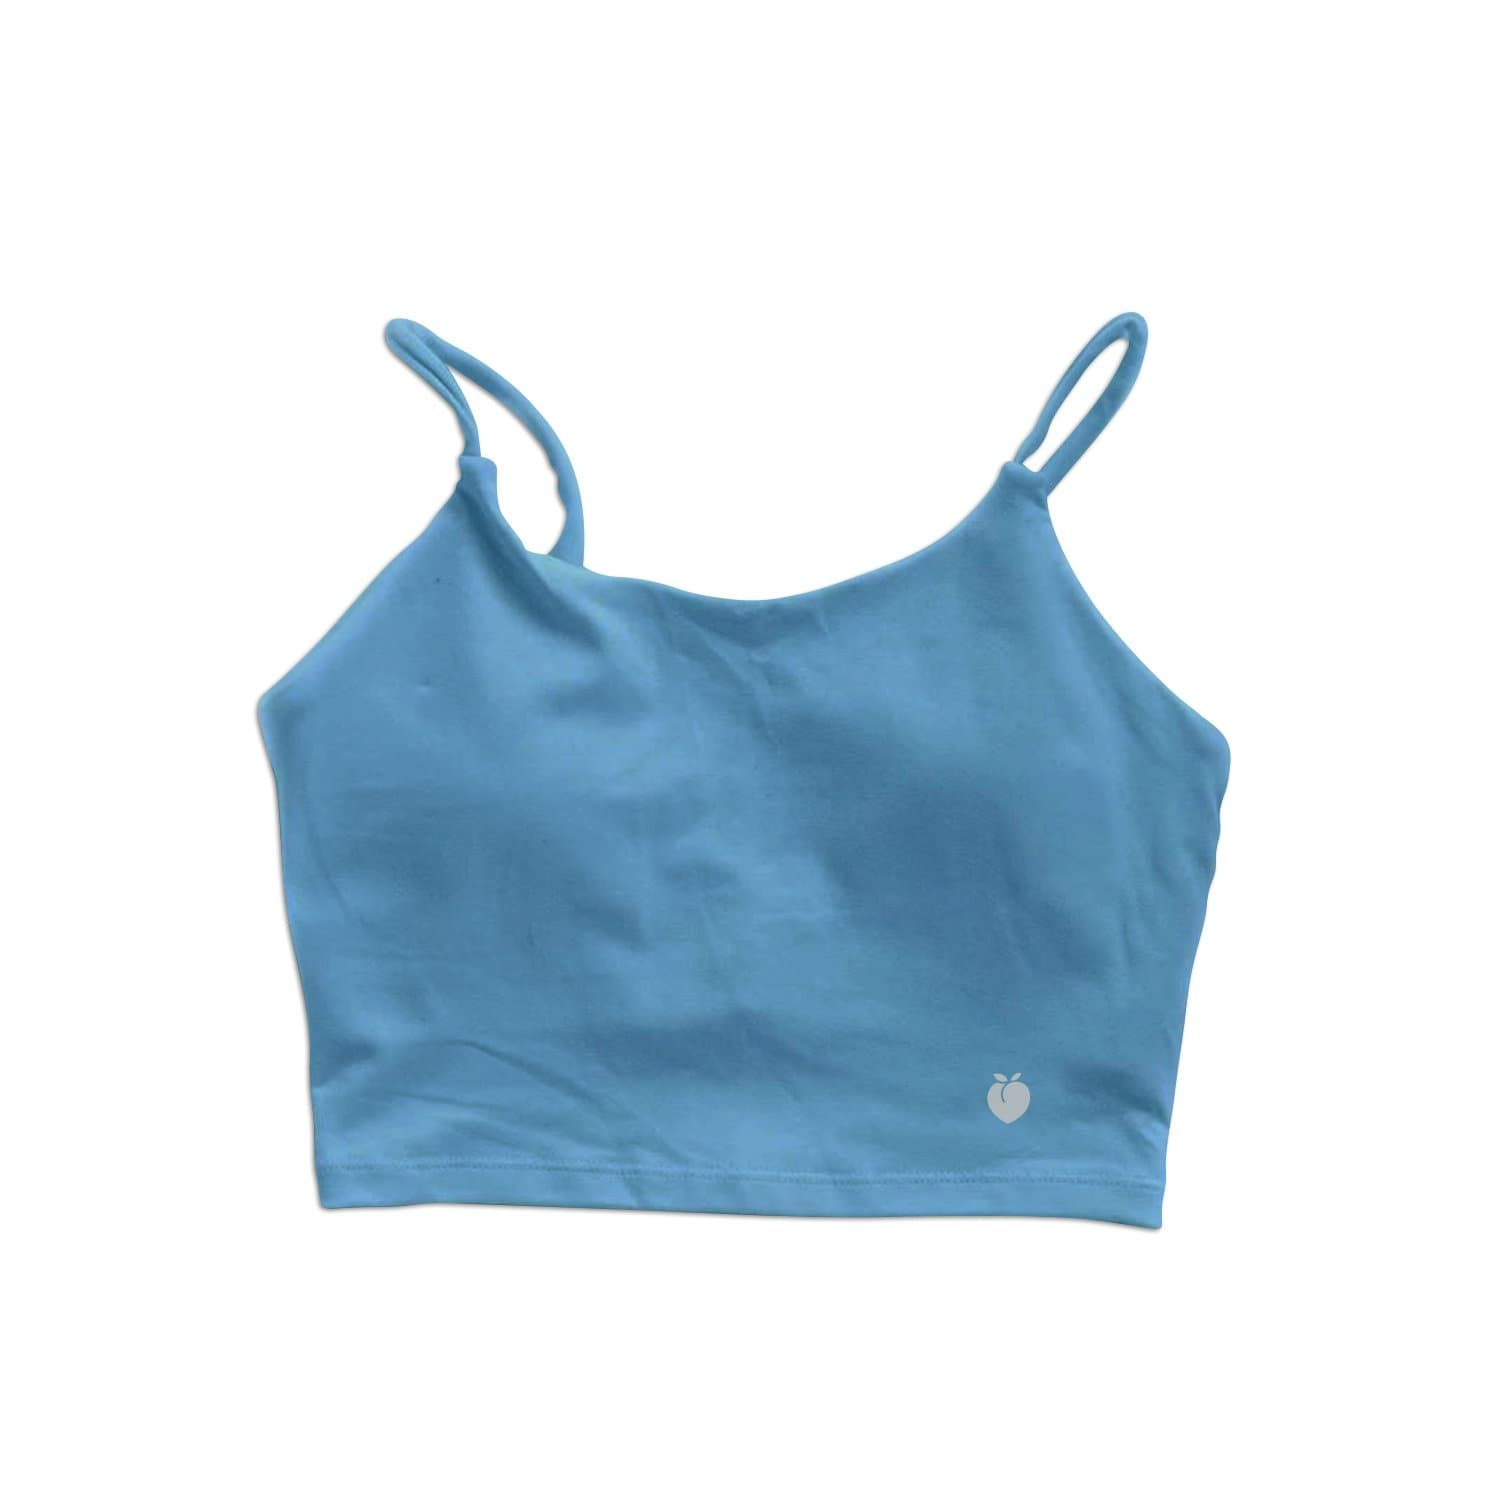 String Crop Top Bra - Sky Blue